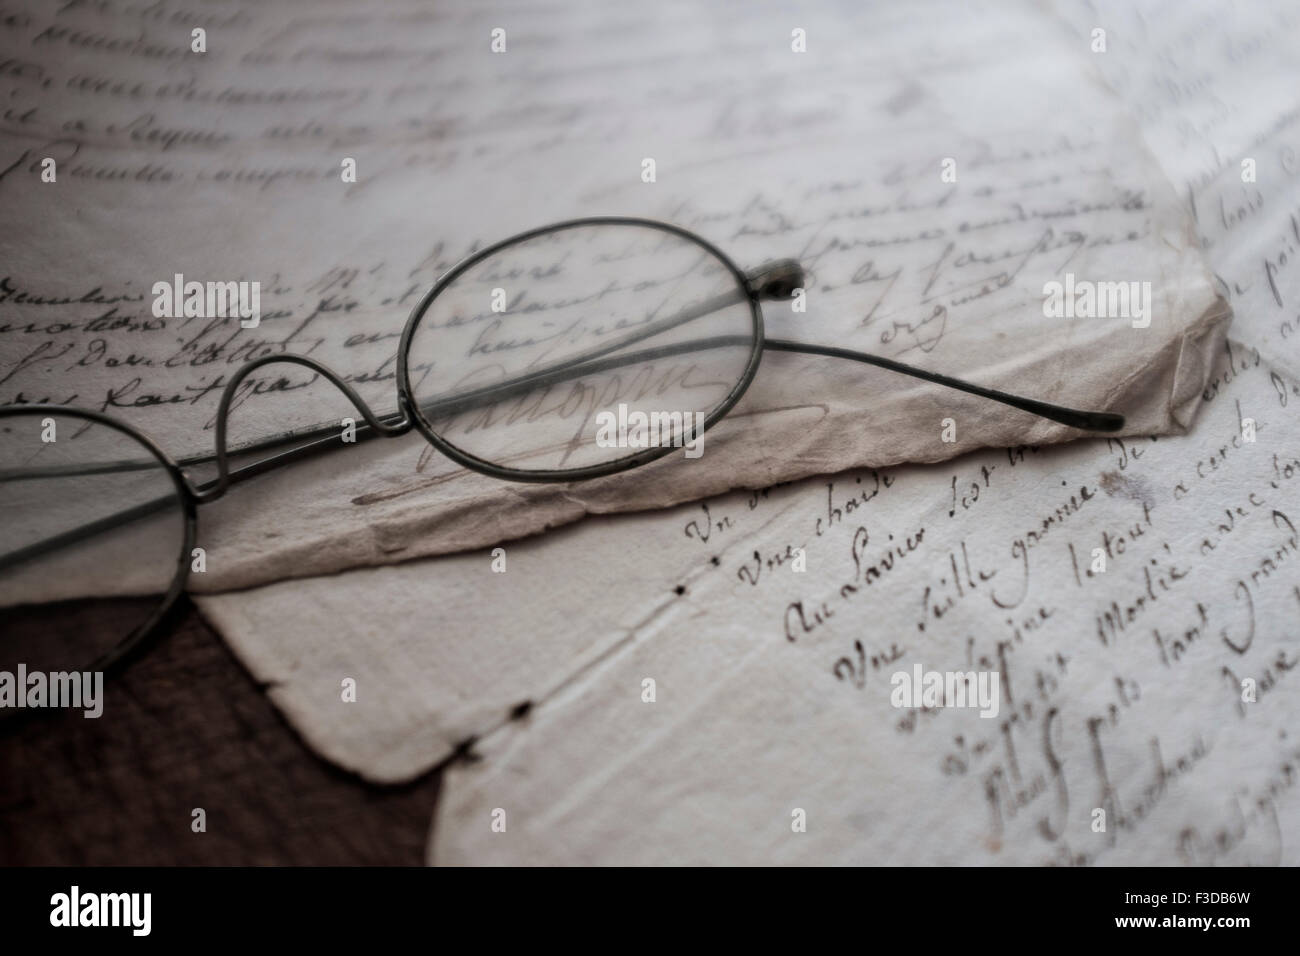 Antique eyeglasses and letters - Stock Image